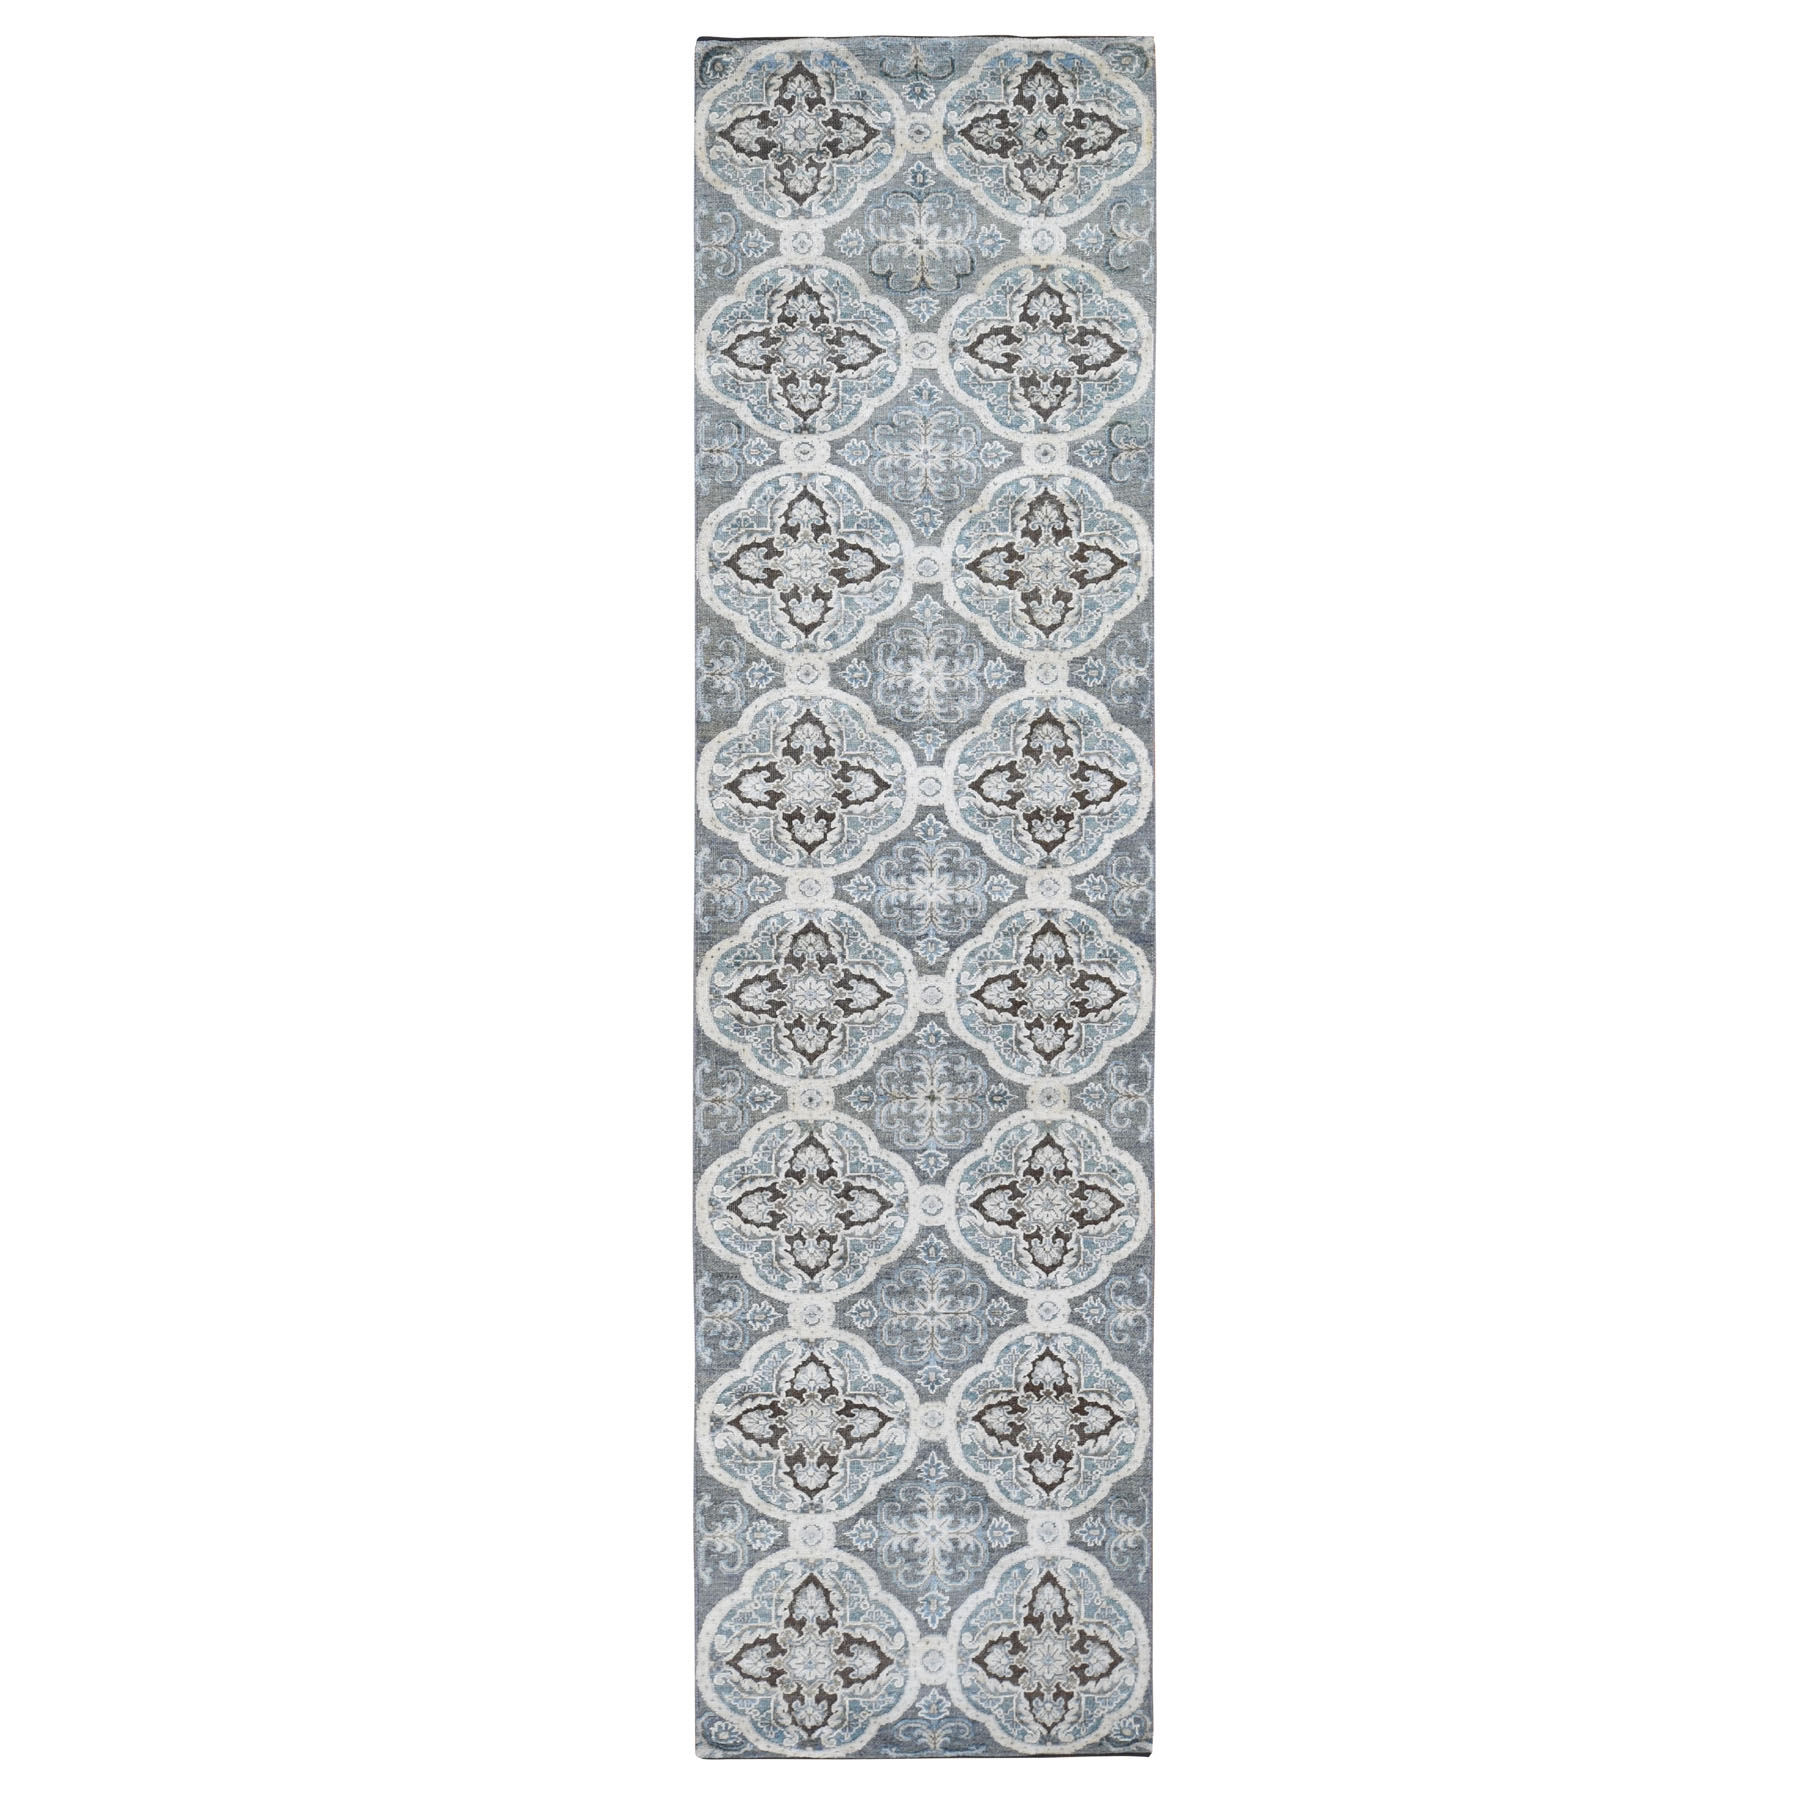 Transitional Hand Knotted Grey Rug No: 0196054